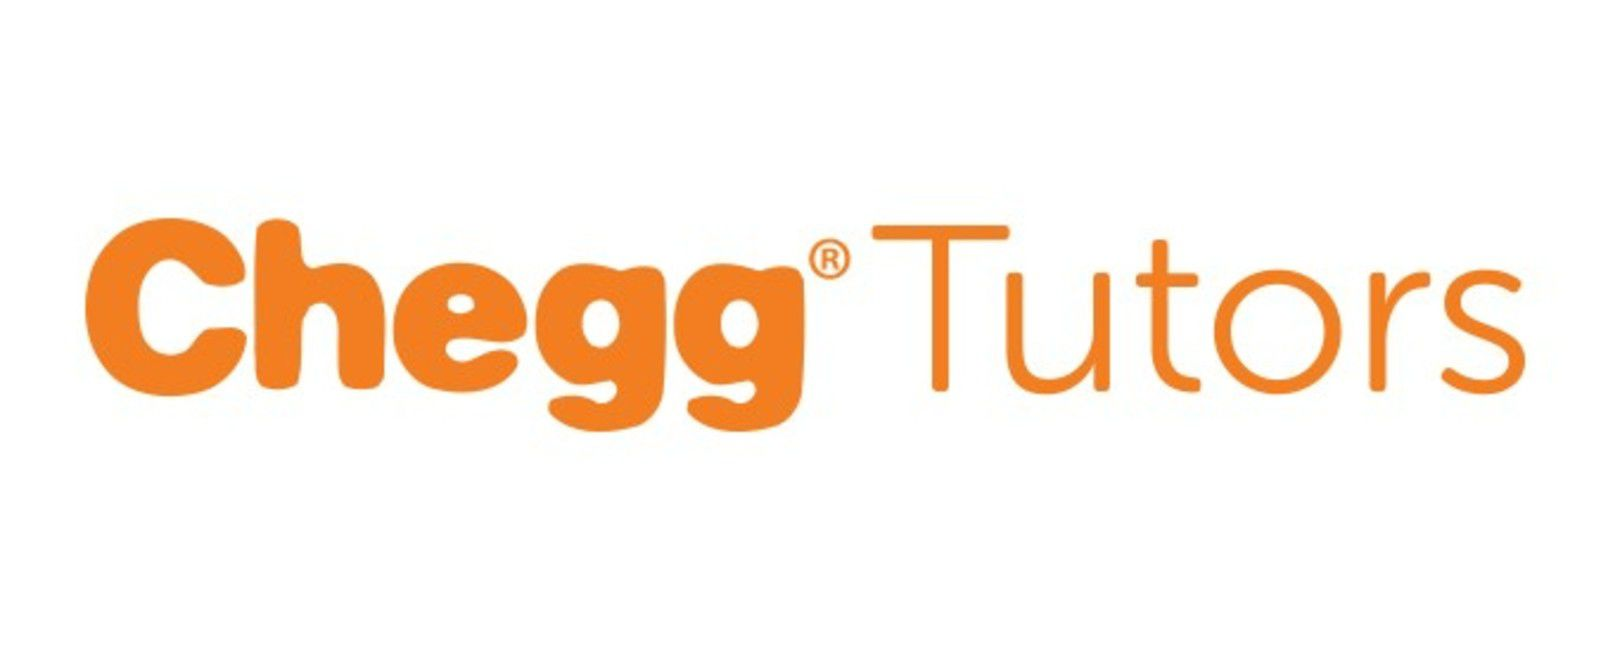 answer questions and earn money with chegg tutors